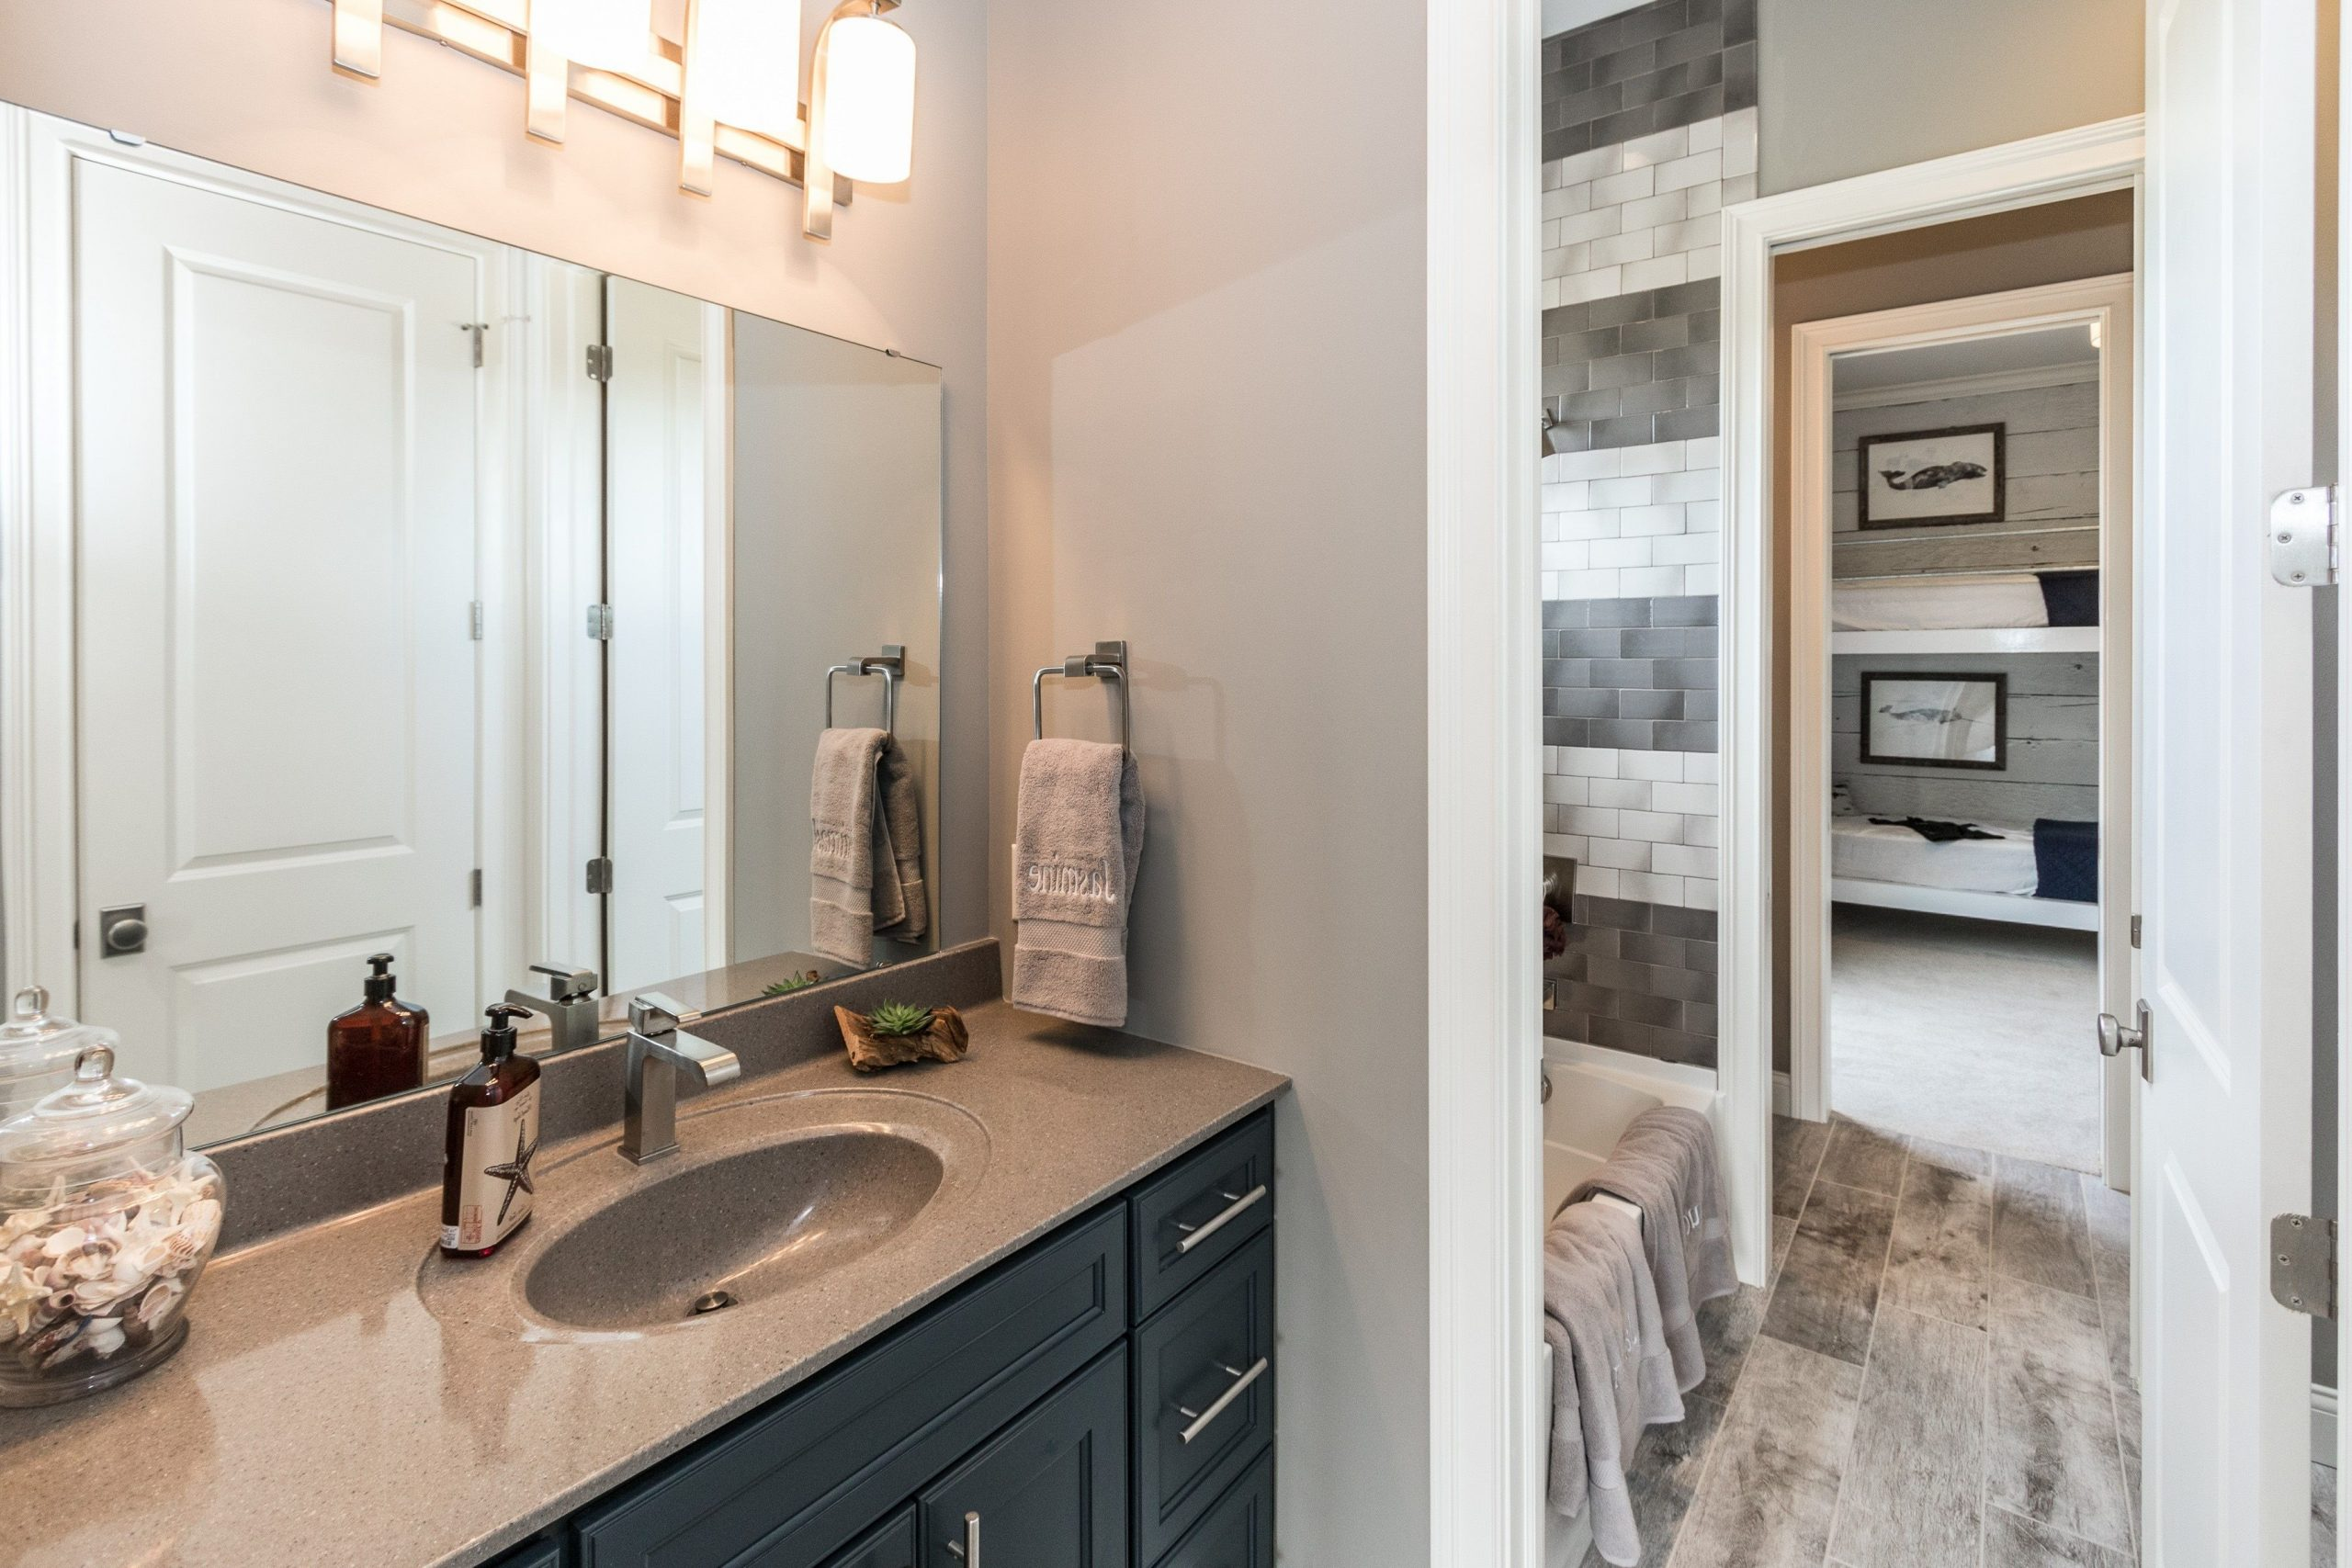 This Jack And Jill Bathroom Would Be Cute And Functional In 20+ Cute Jack And Jill Bathroom Inspirations